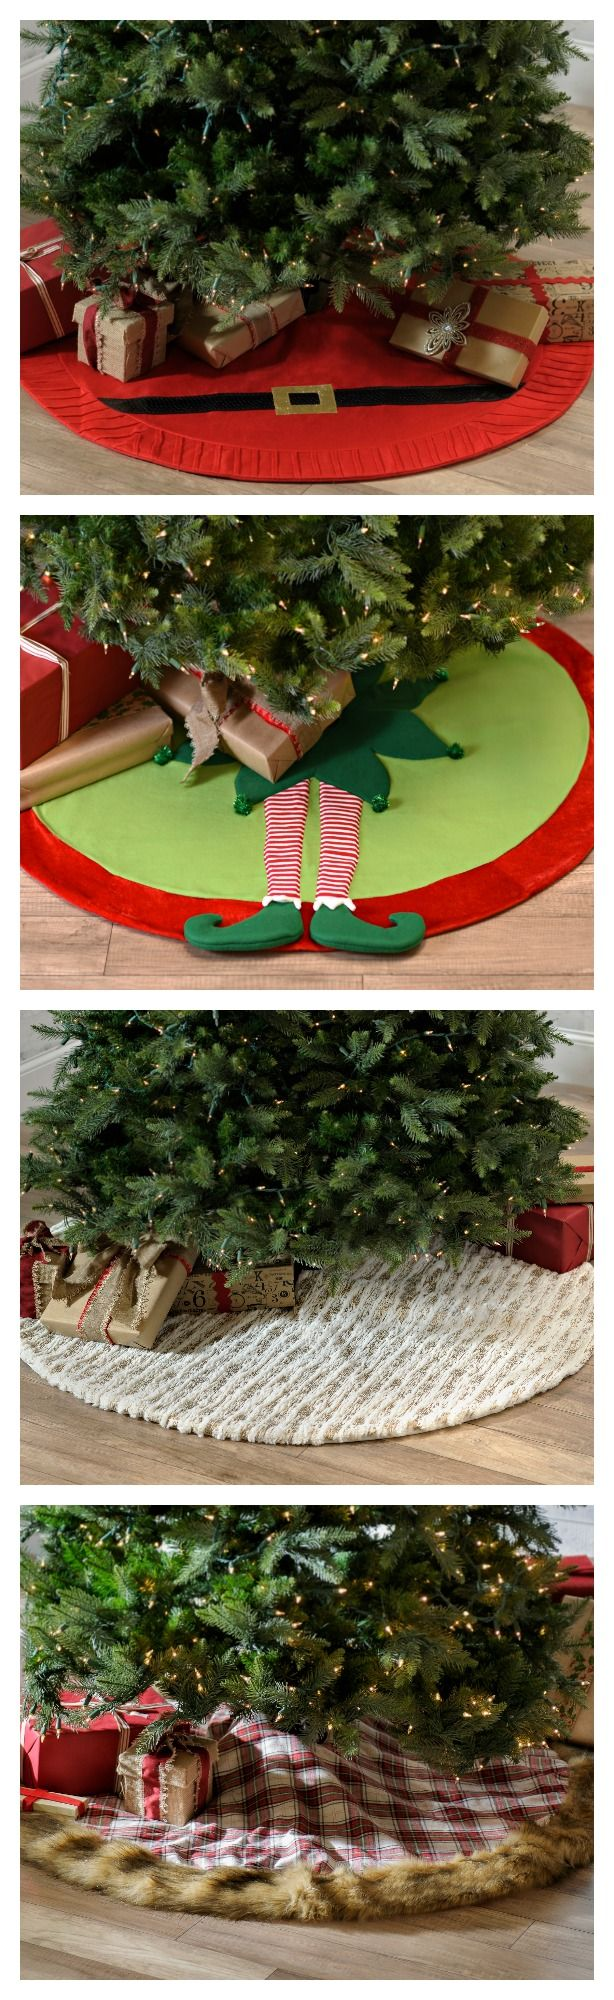 Finish your holiday decorating with a festive and bright holiday skirt for your Christmas tree.